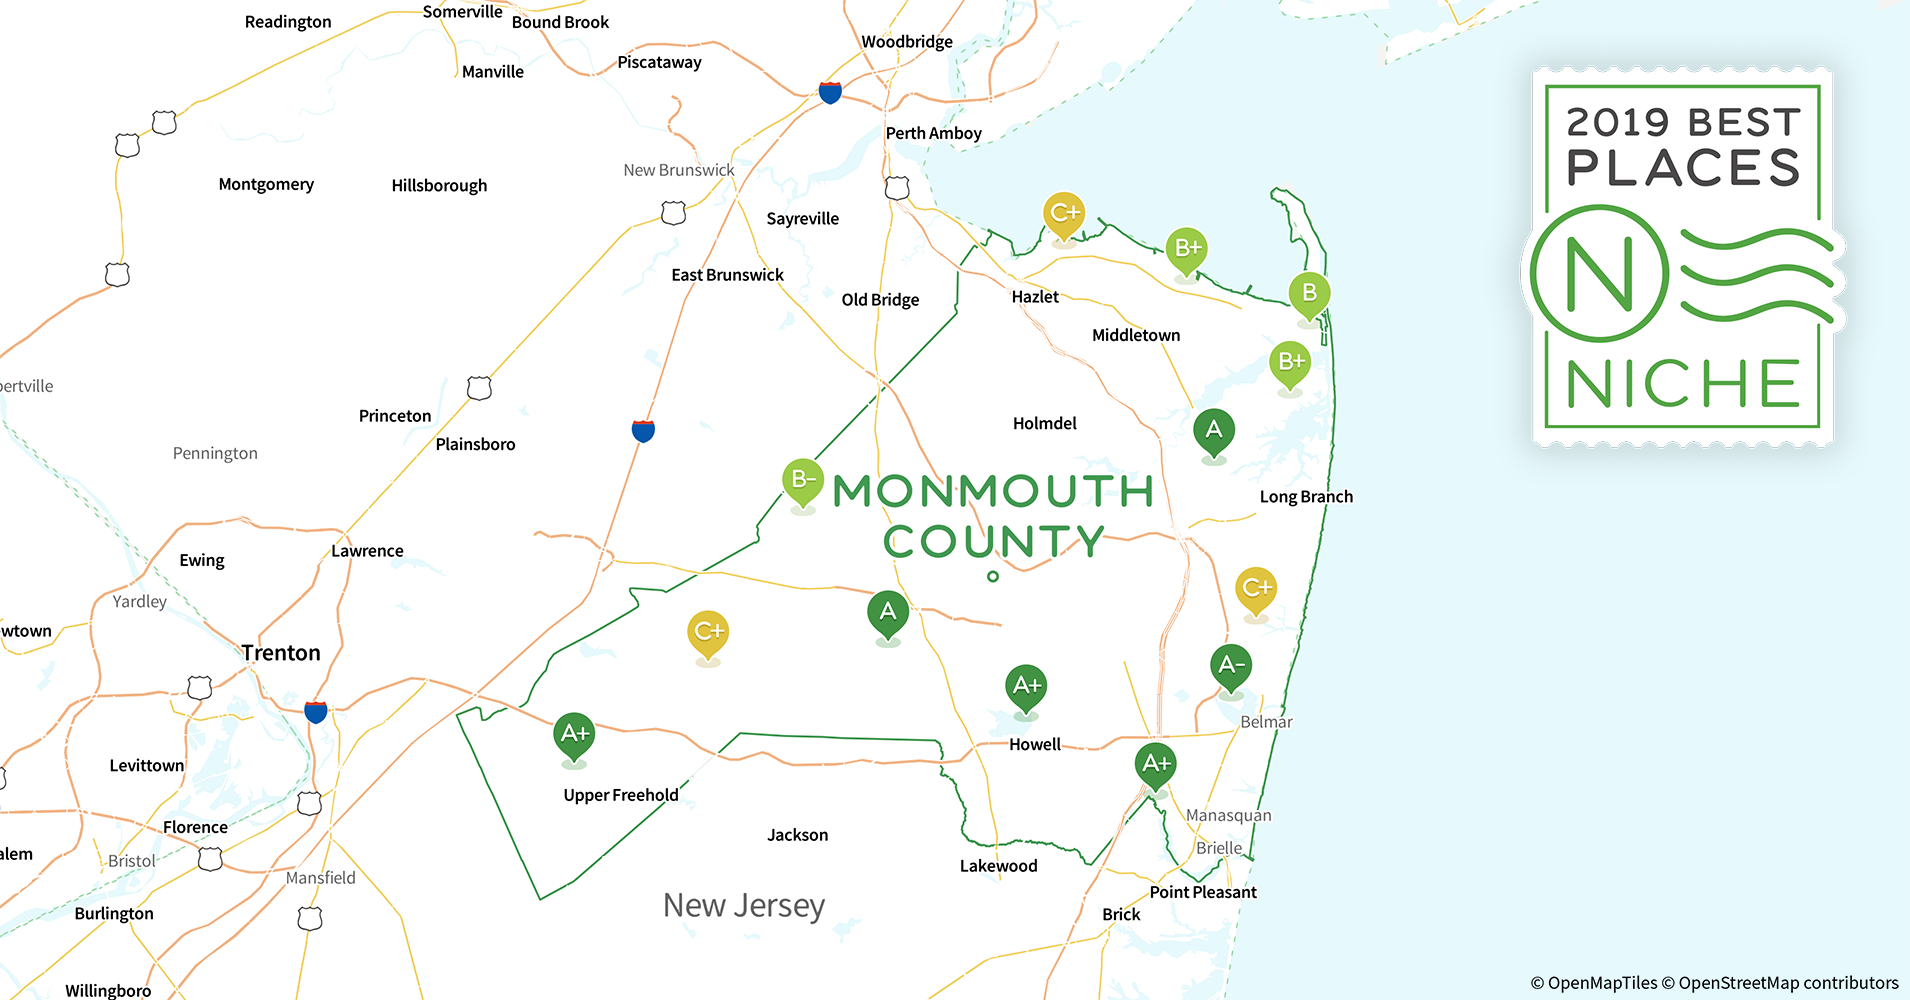 2019 Best Places to Live in Monmouth County, NJ - Niche